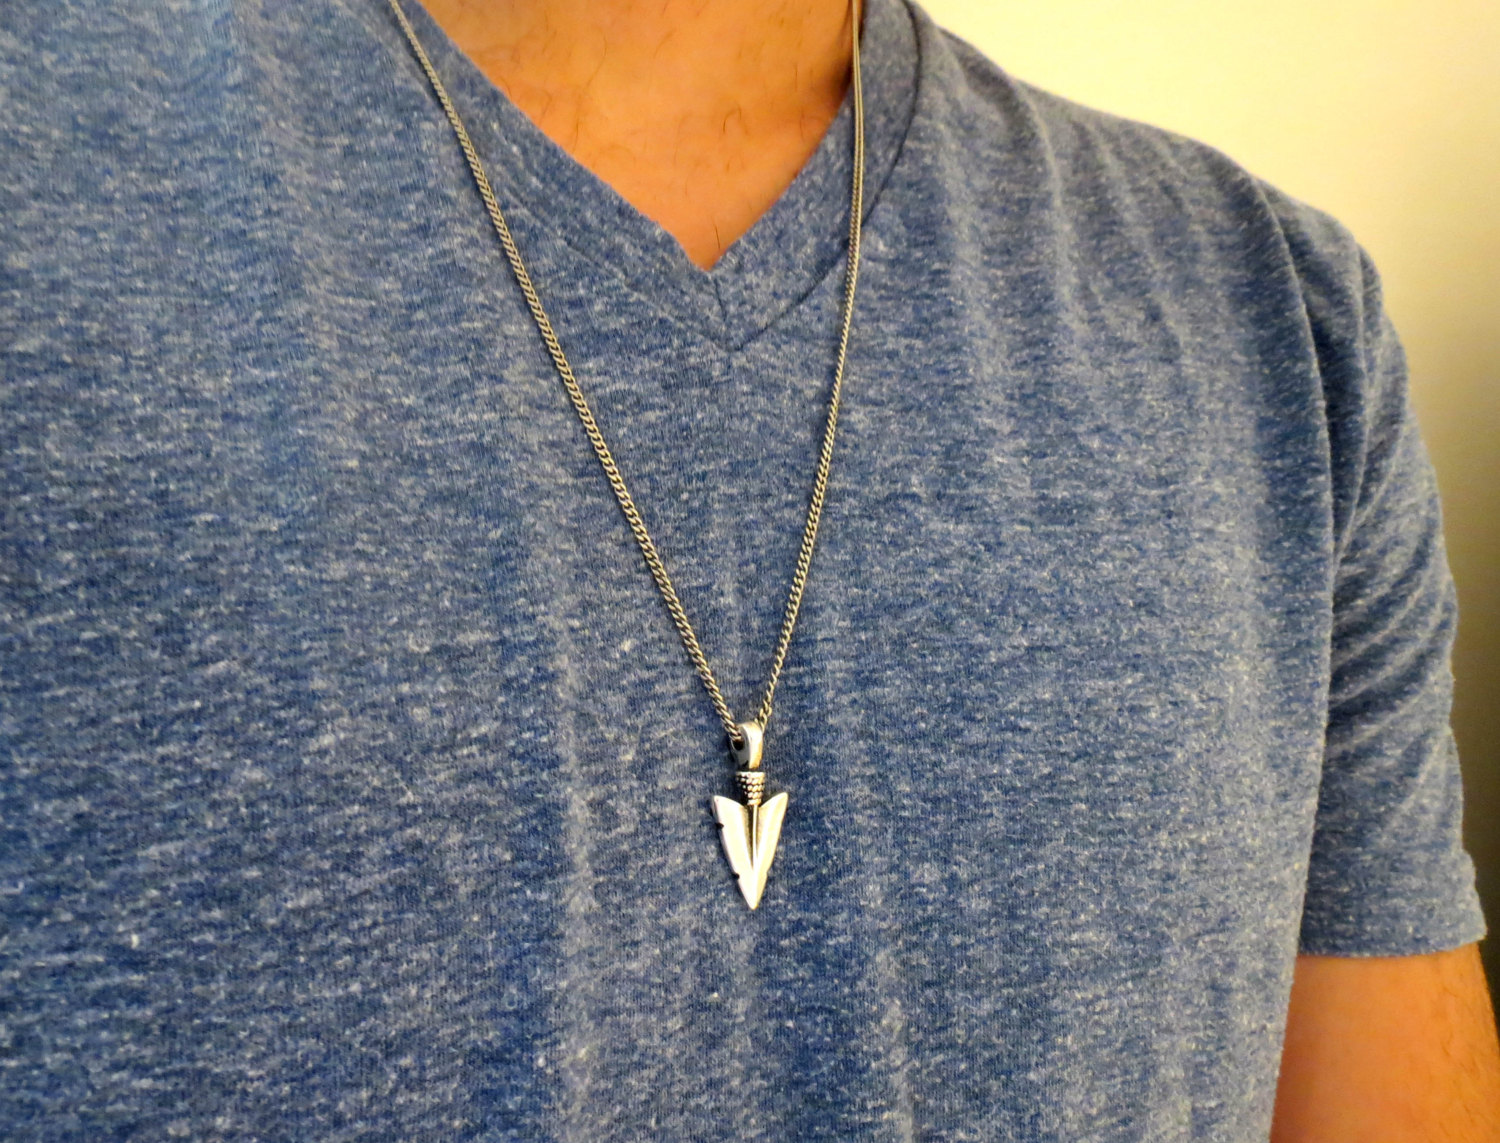 necklace window mens jewellers c necklaces in gold chain peoples v two men tone s guy link